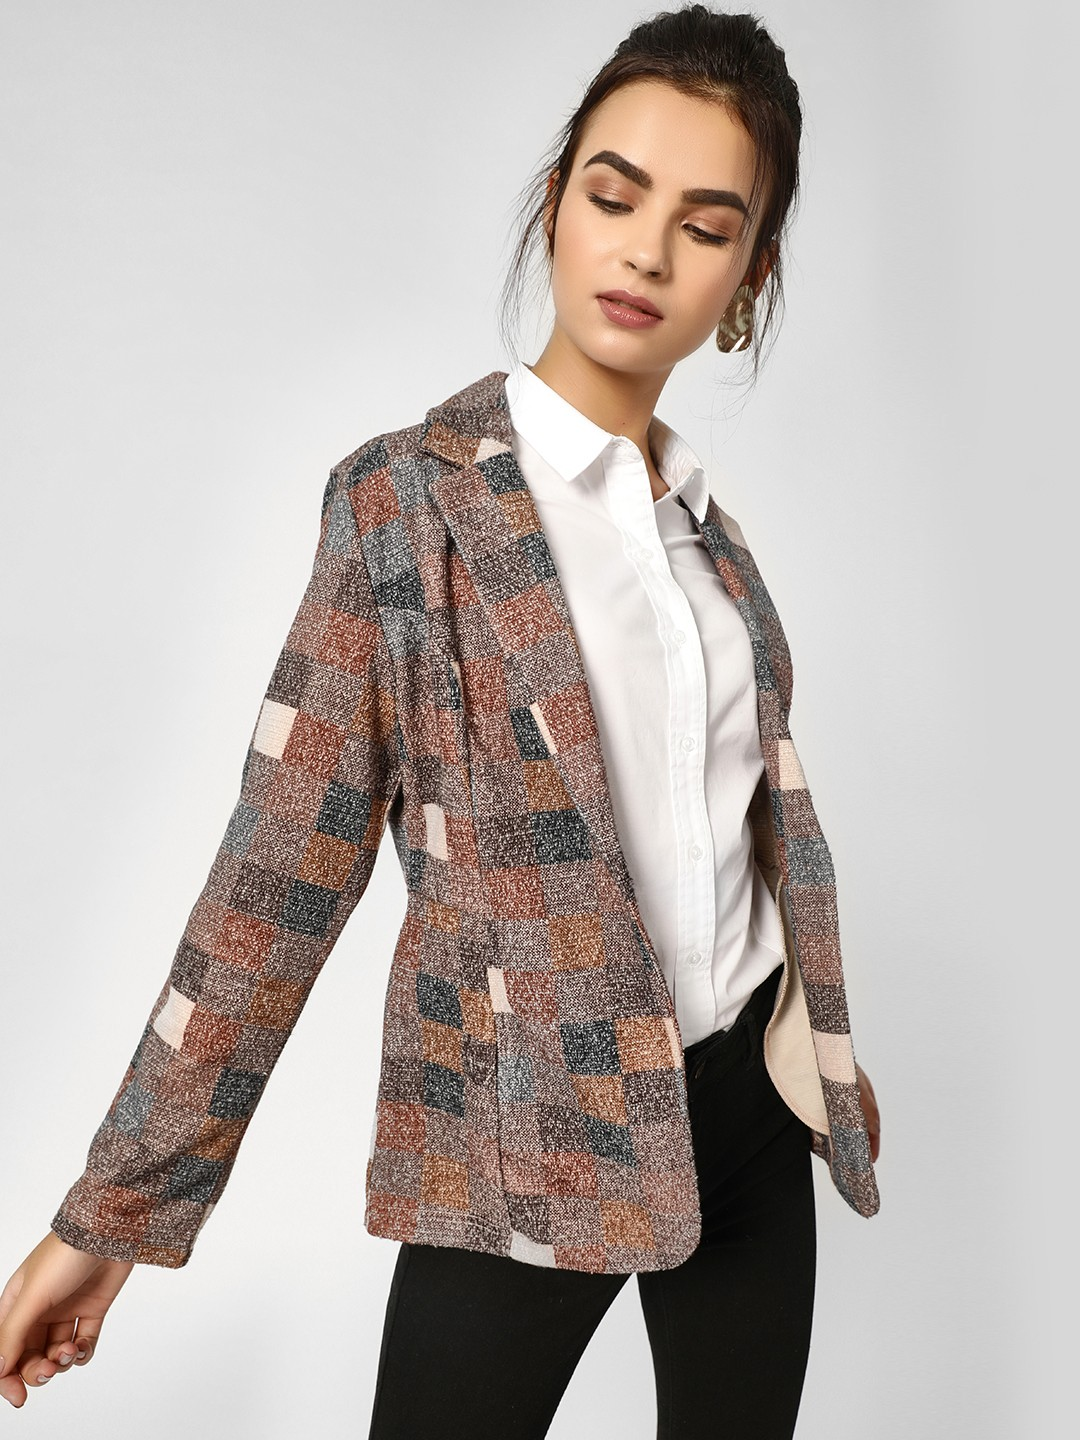 PostFold Multi Colour Block Checkered Blazer 1